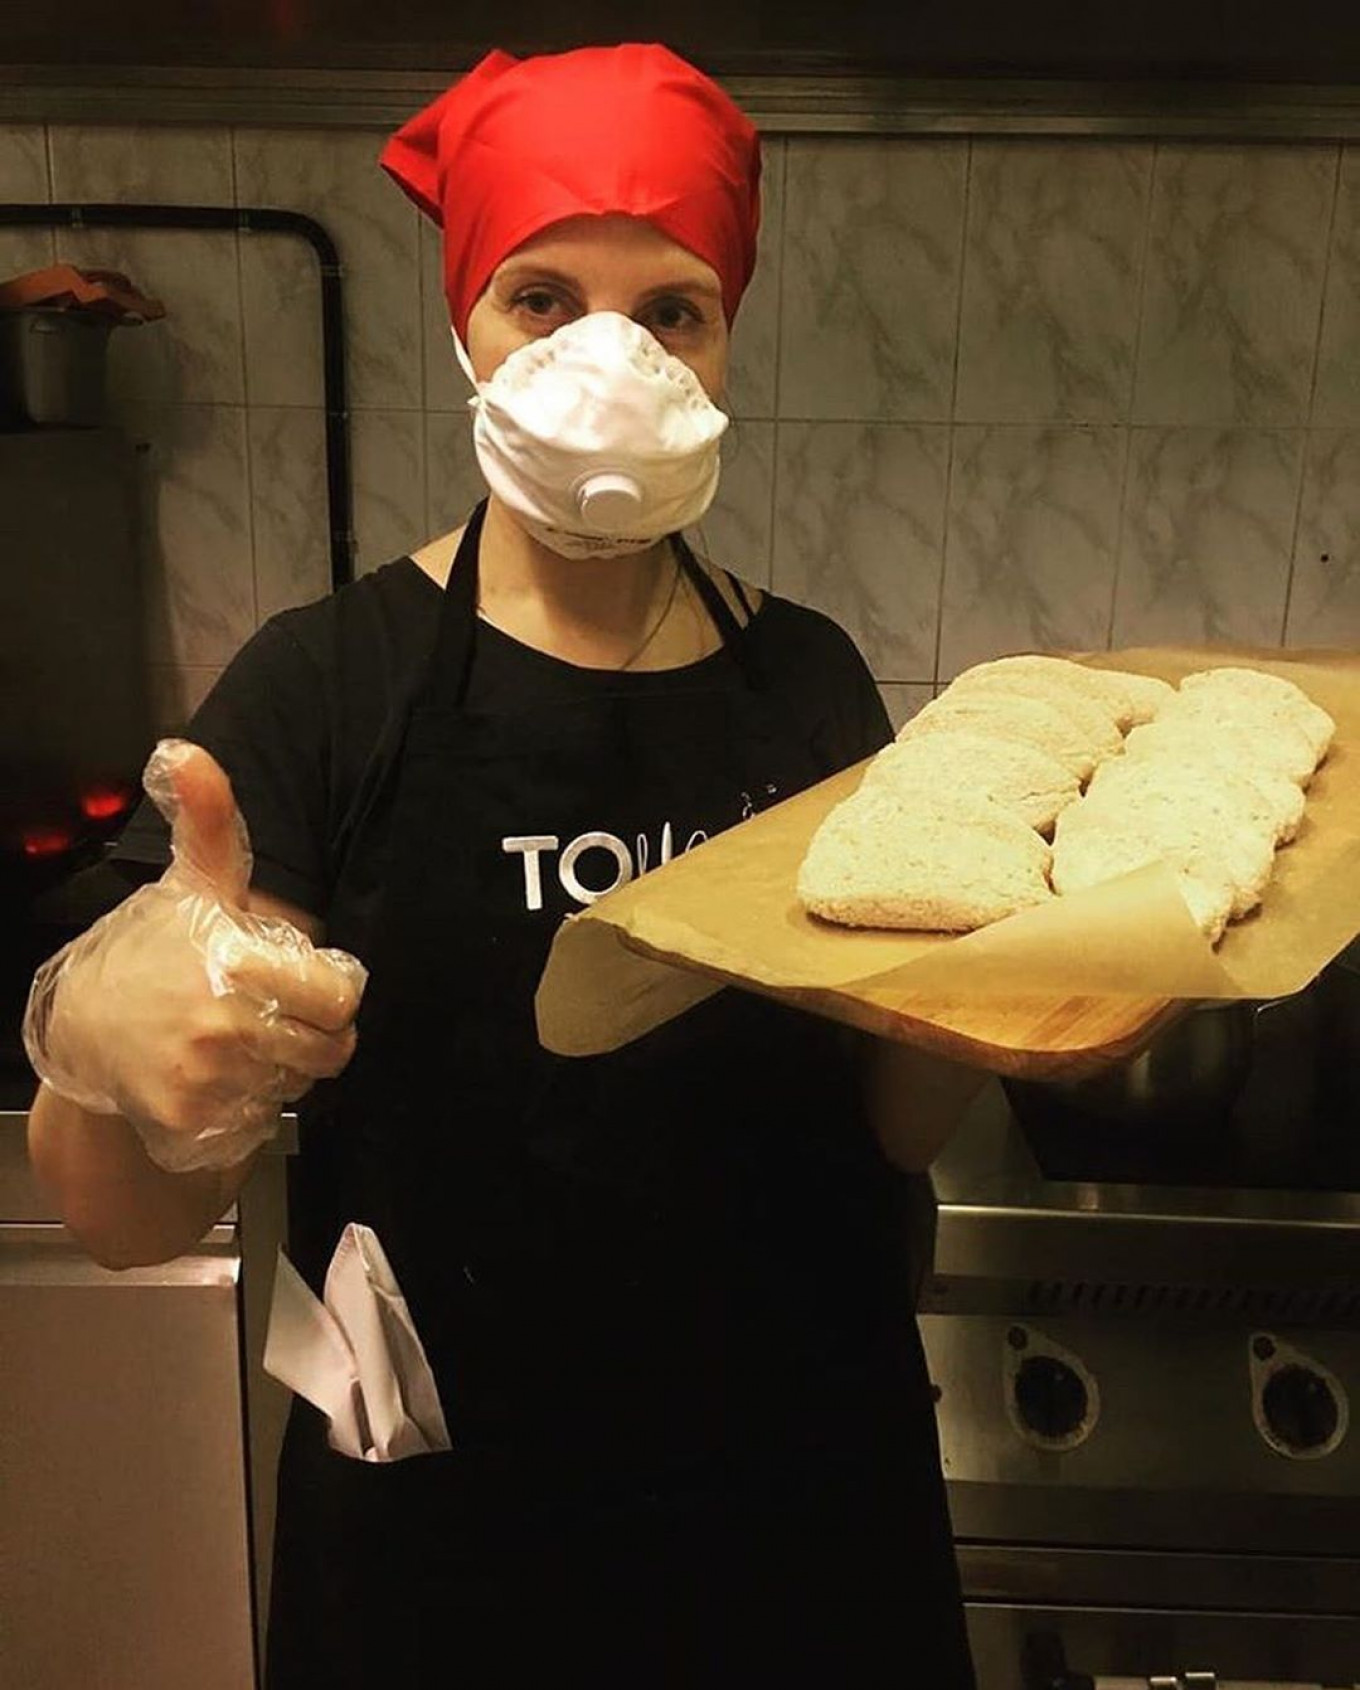 #Covidarnost provides a variety of services, including baking pies for shut-ins. Covidarnost Moscow